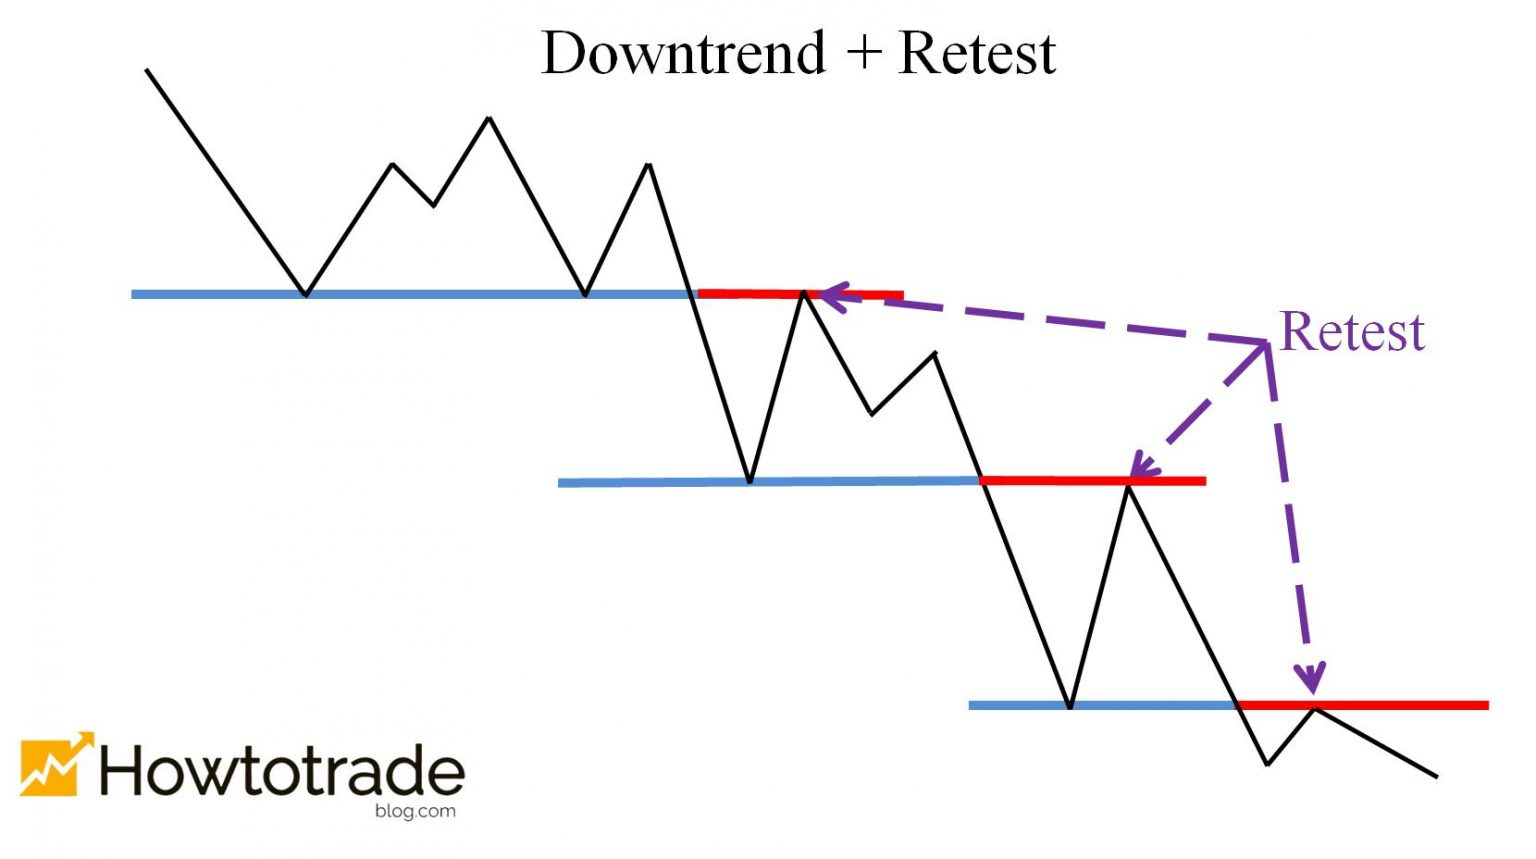 The price penetrates troughs and retests in a downtrend